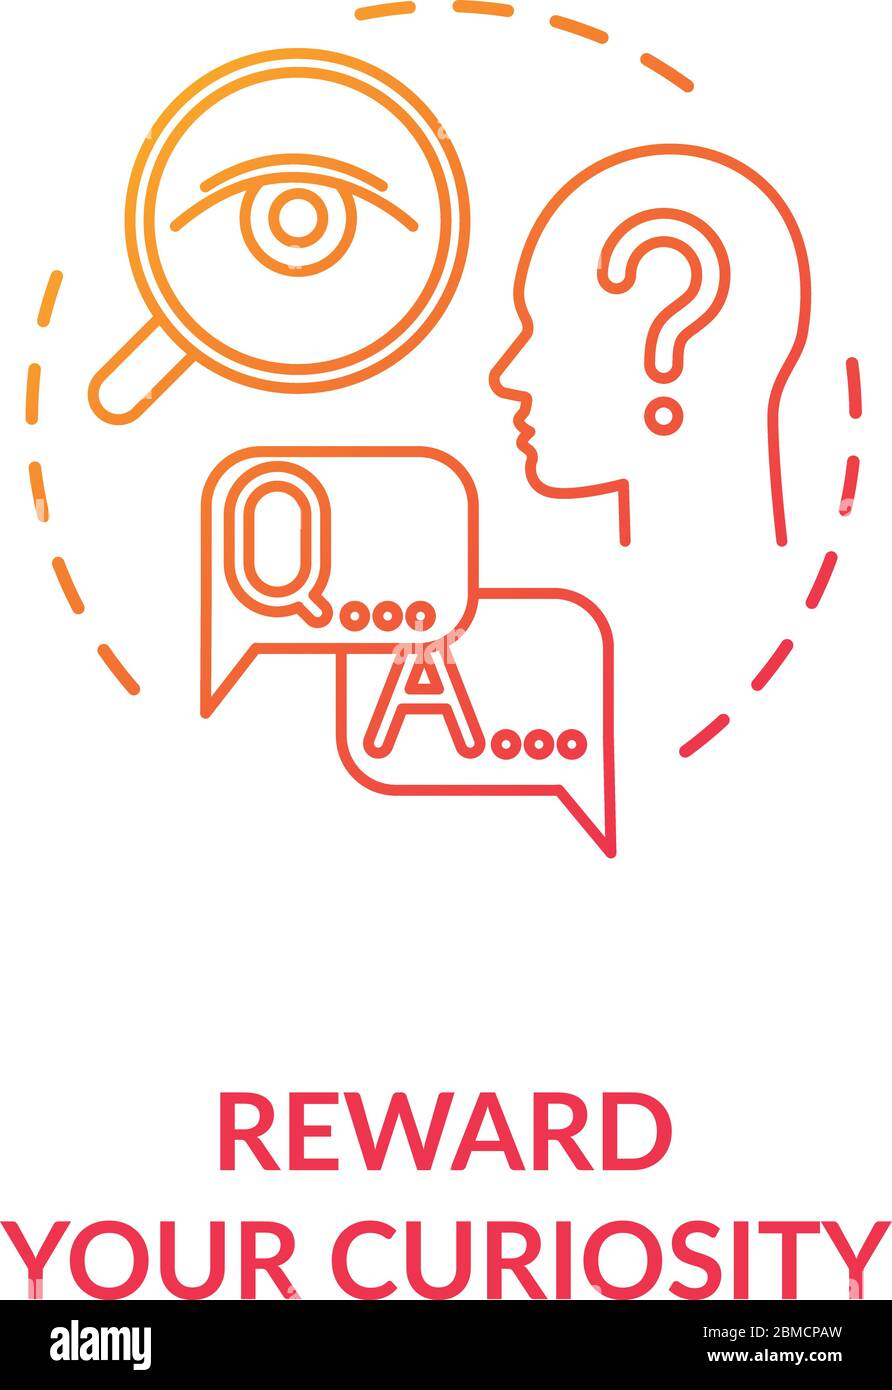 Reward your curiosity concept icon. Self motivating, indulging yourself idea thin line illustration. Personal development, self improvement. Vector is Stock Vector